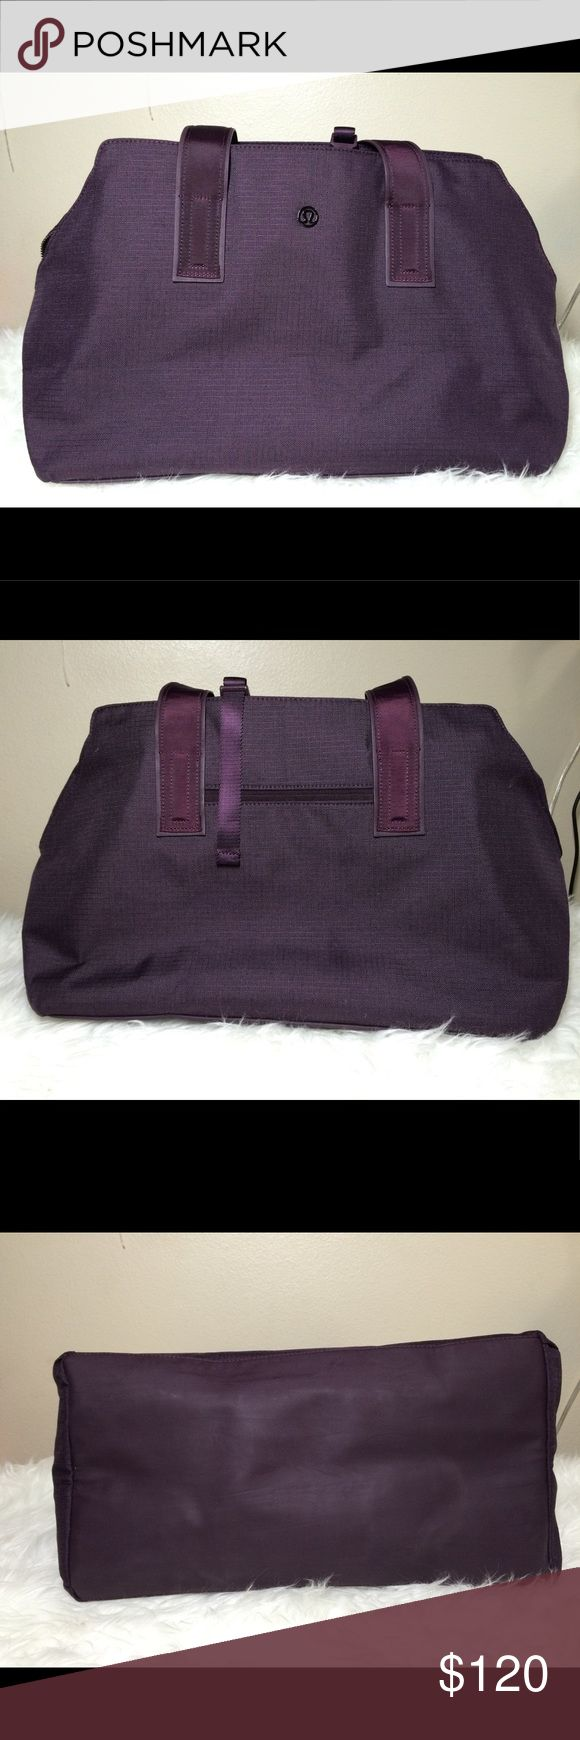 """•LIKE NEW• Lululemon Go Getter Bag Lululemon Go Getter Bag  • Pre-loved, barely used, like new excellent condition  • Still selling in stores for full price  • Includes heat-resistant pocket for hair straightener and shoe bag  • Exterior zippered  pocket • Stowable straps  • Tested to hold 22kg (50 lbs)  • Laptop pocket fits 15""""  • Dimensions: 43cm X 23cm X 30cm (17"""" X 9"""" 12"""") • Material: Polyester, polyurethane (easy to wipe clean) • Color: Heathered Black Cherry  • No trades or off-site…"""